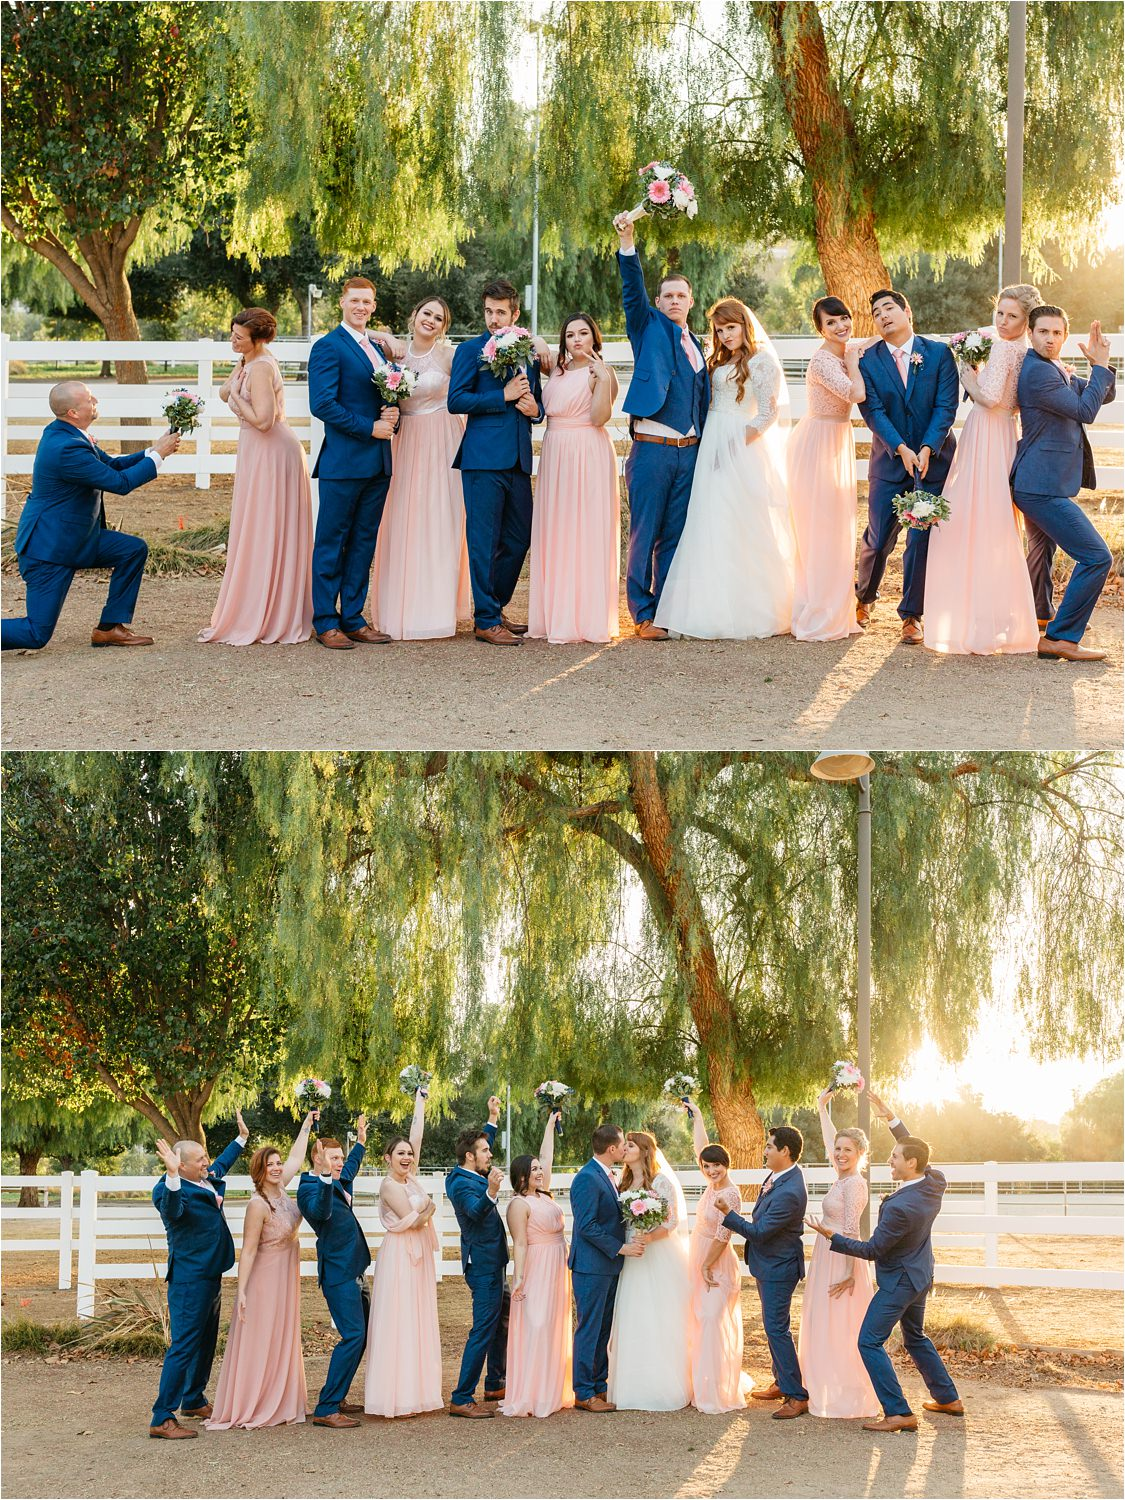 Fun Wedding Party Photos - Fall Wedding in Southern California - Chino Hills, CA - https://brittneyhannonphotography.com